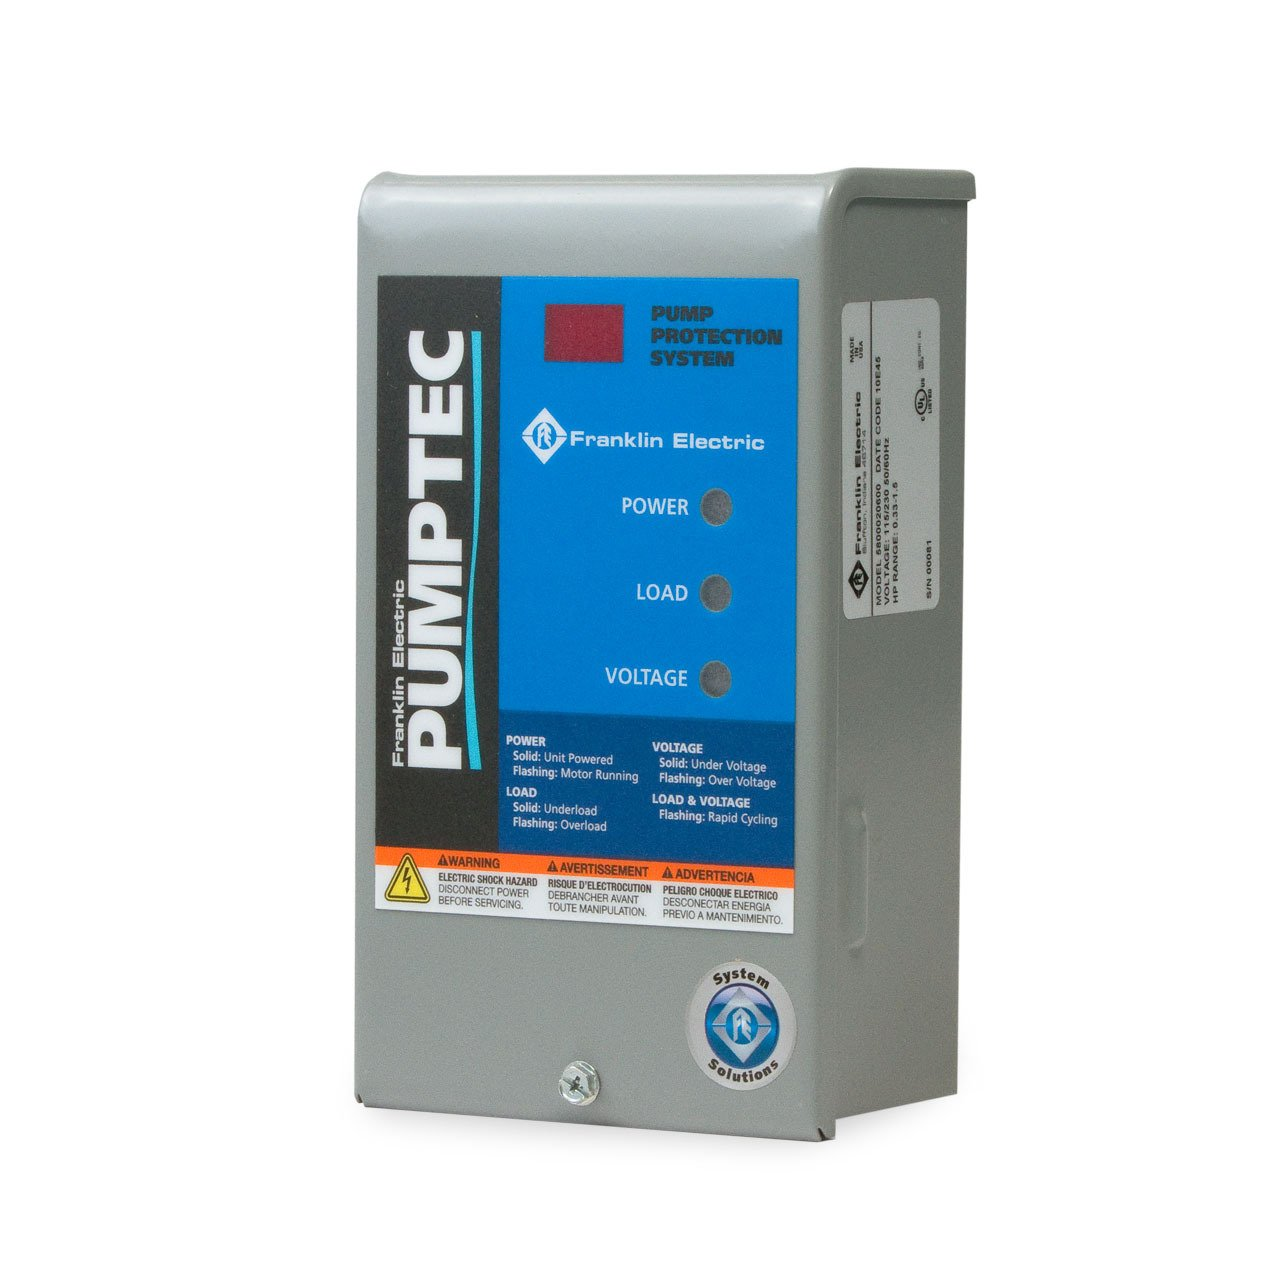 FRANKLIN ELECTRIC Pumptec water pump protection 1/3 HP to 1.5 HP 230/115V LOW YIELD WELLS by Franklin